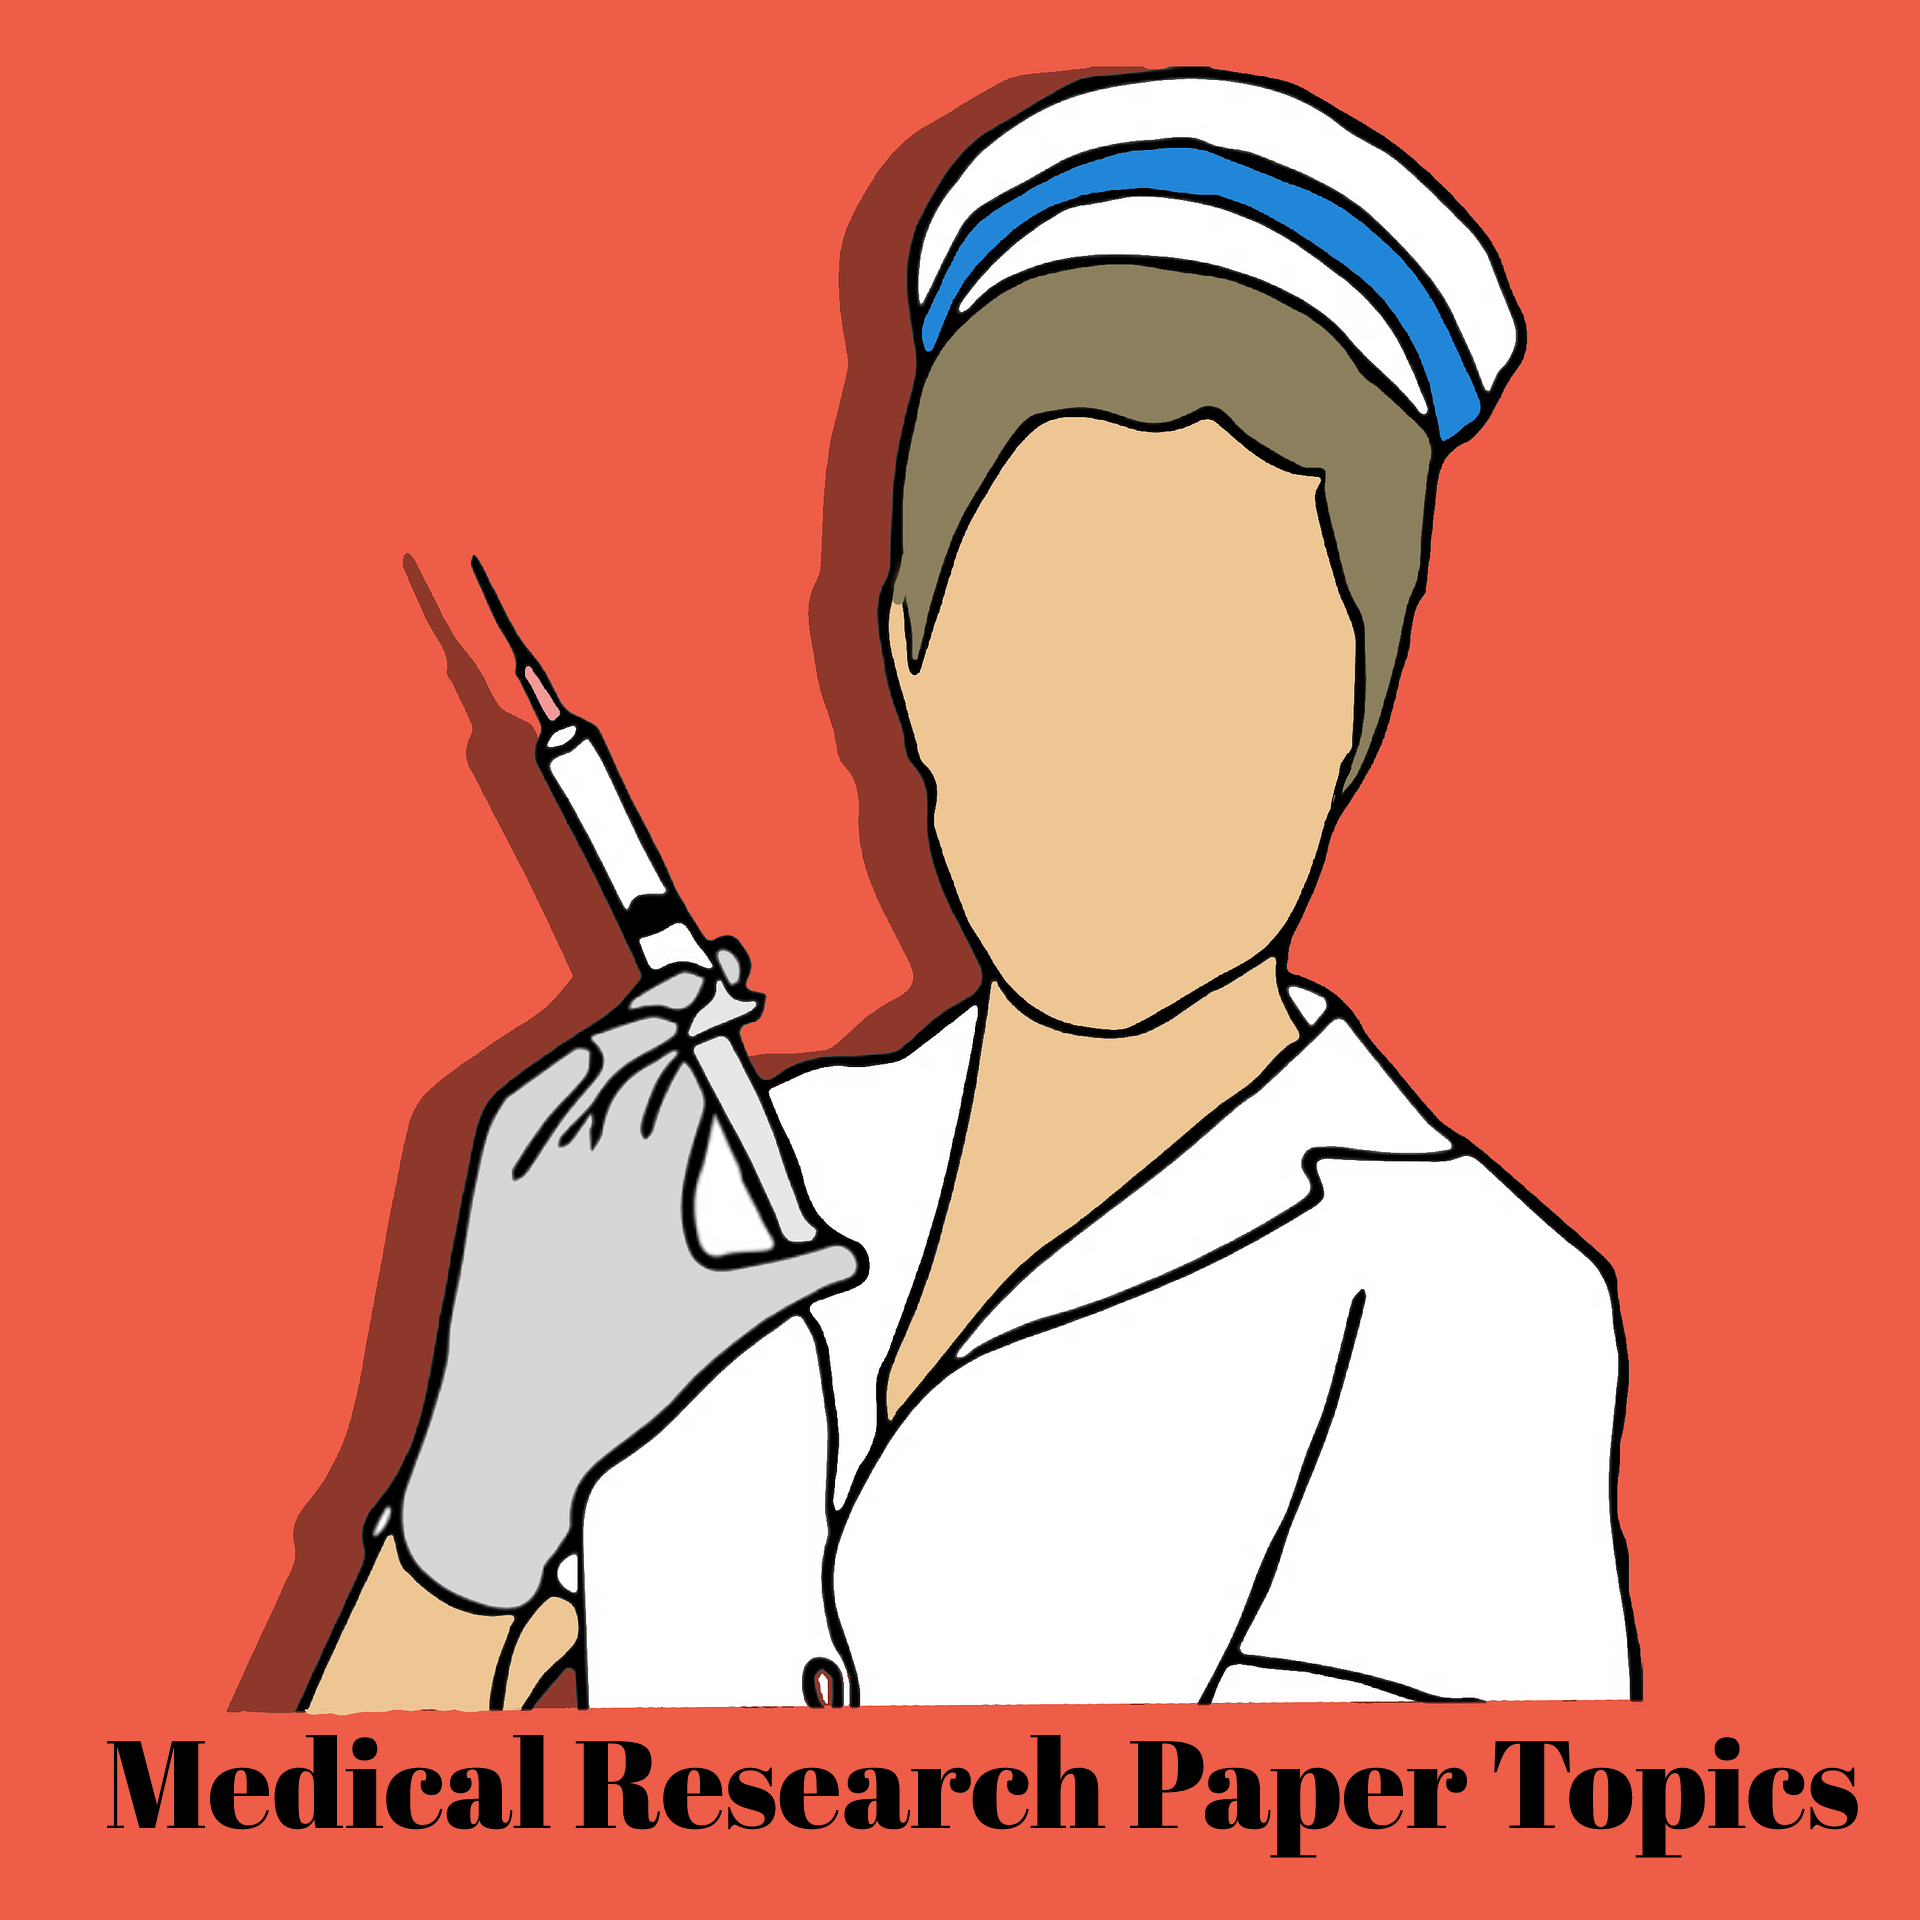 blog/medical-research-paper-topics.html